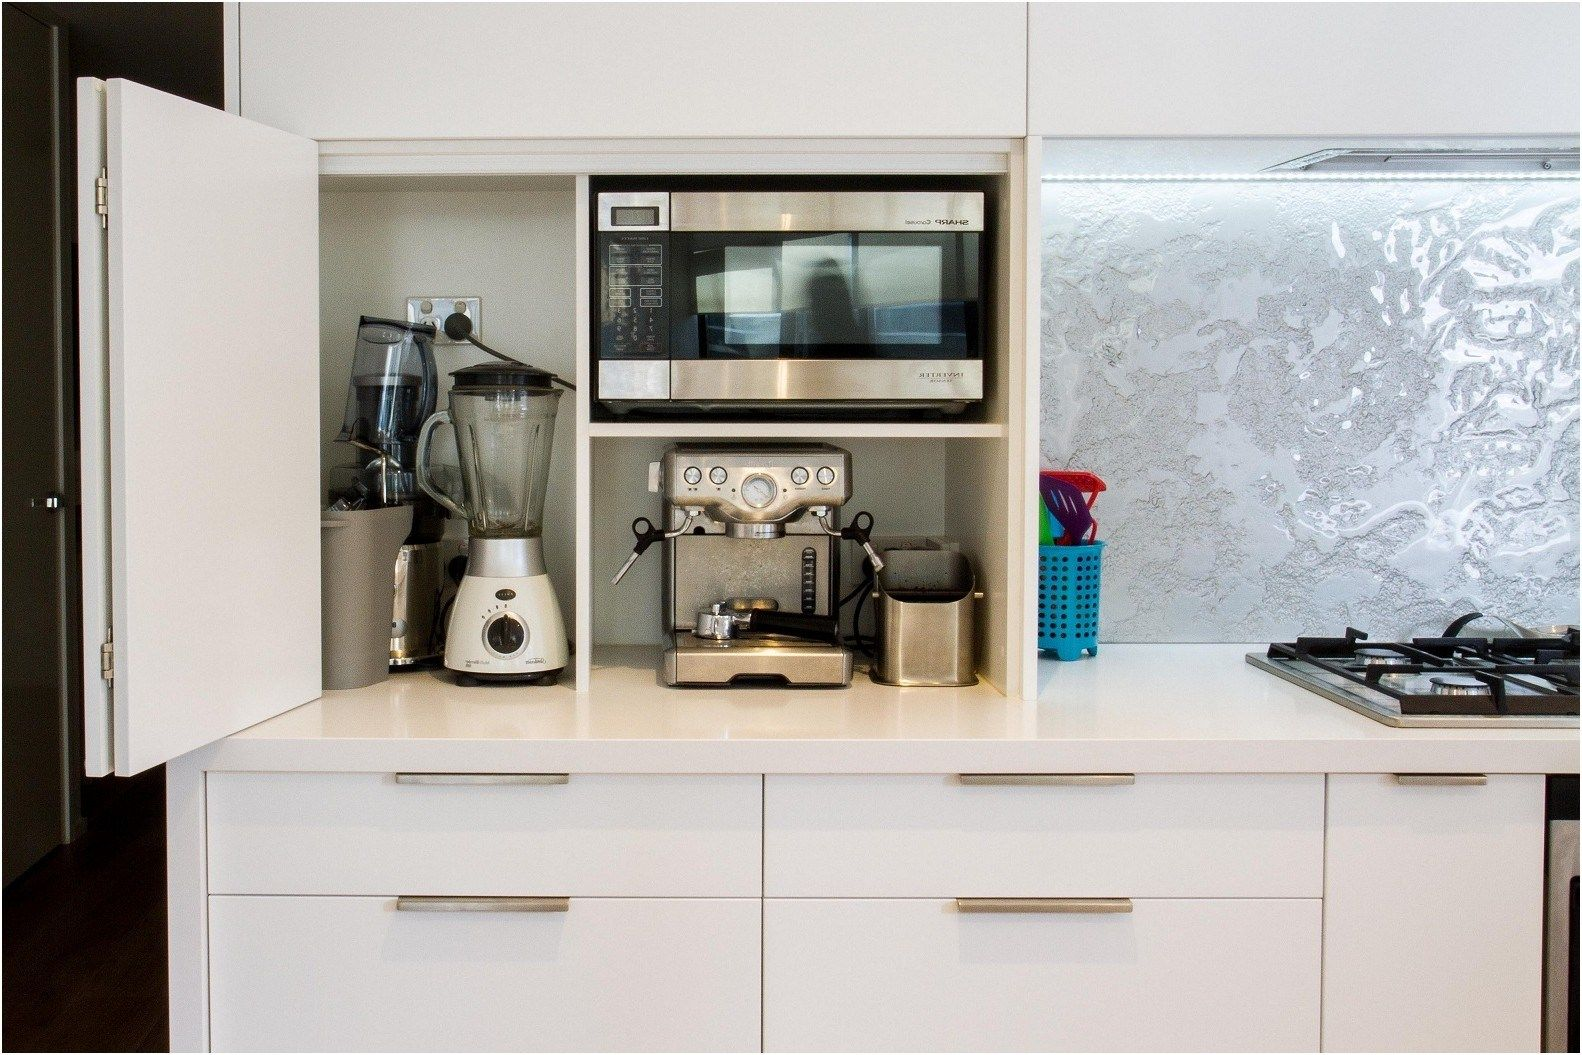 Best Appliances For Small Kitchens There Are More Modern Simple Endearing Best Kitchen Appliances Inspiration Design